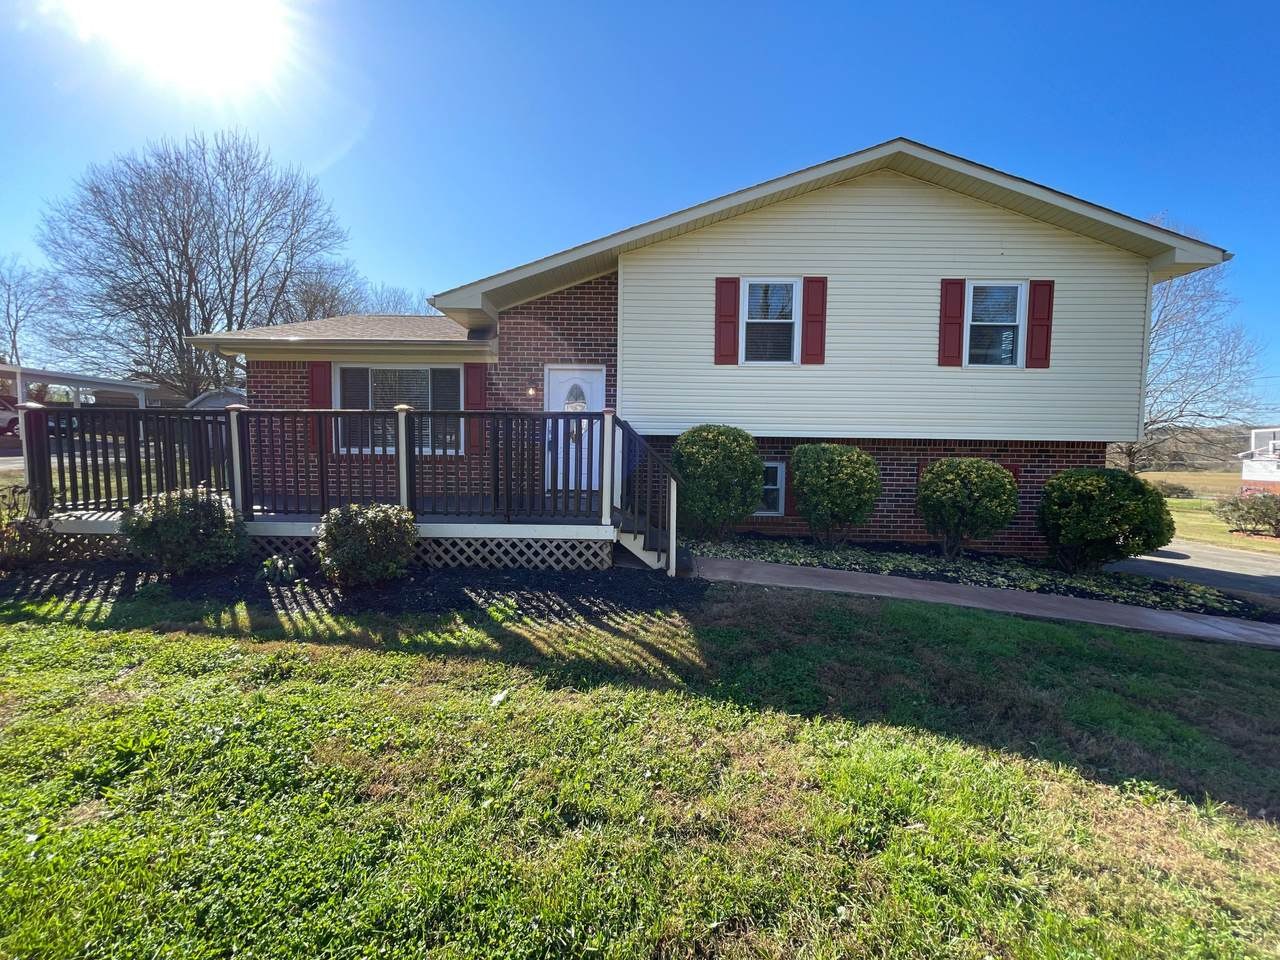 4610 Aster Dr - Photo 1